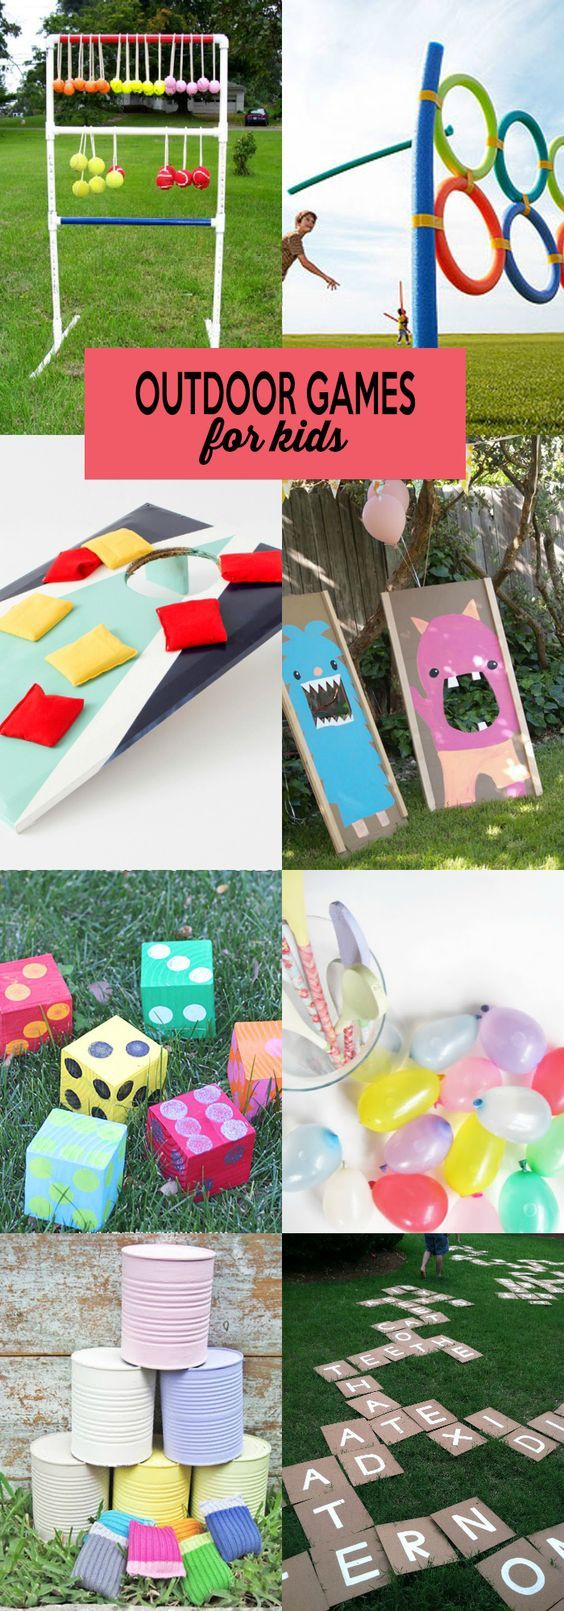 Best 25 Kid Outdoor Games Ideas On Pinterest